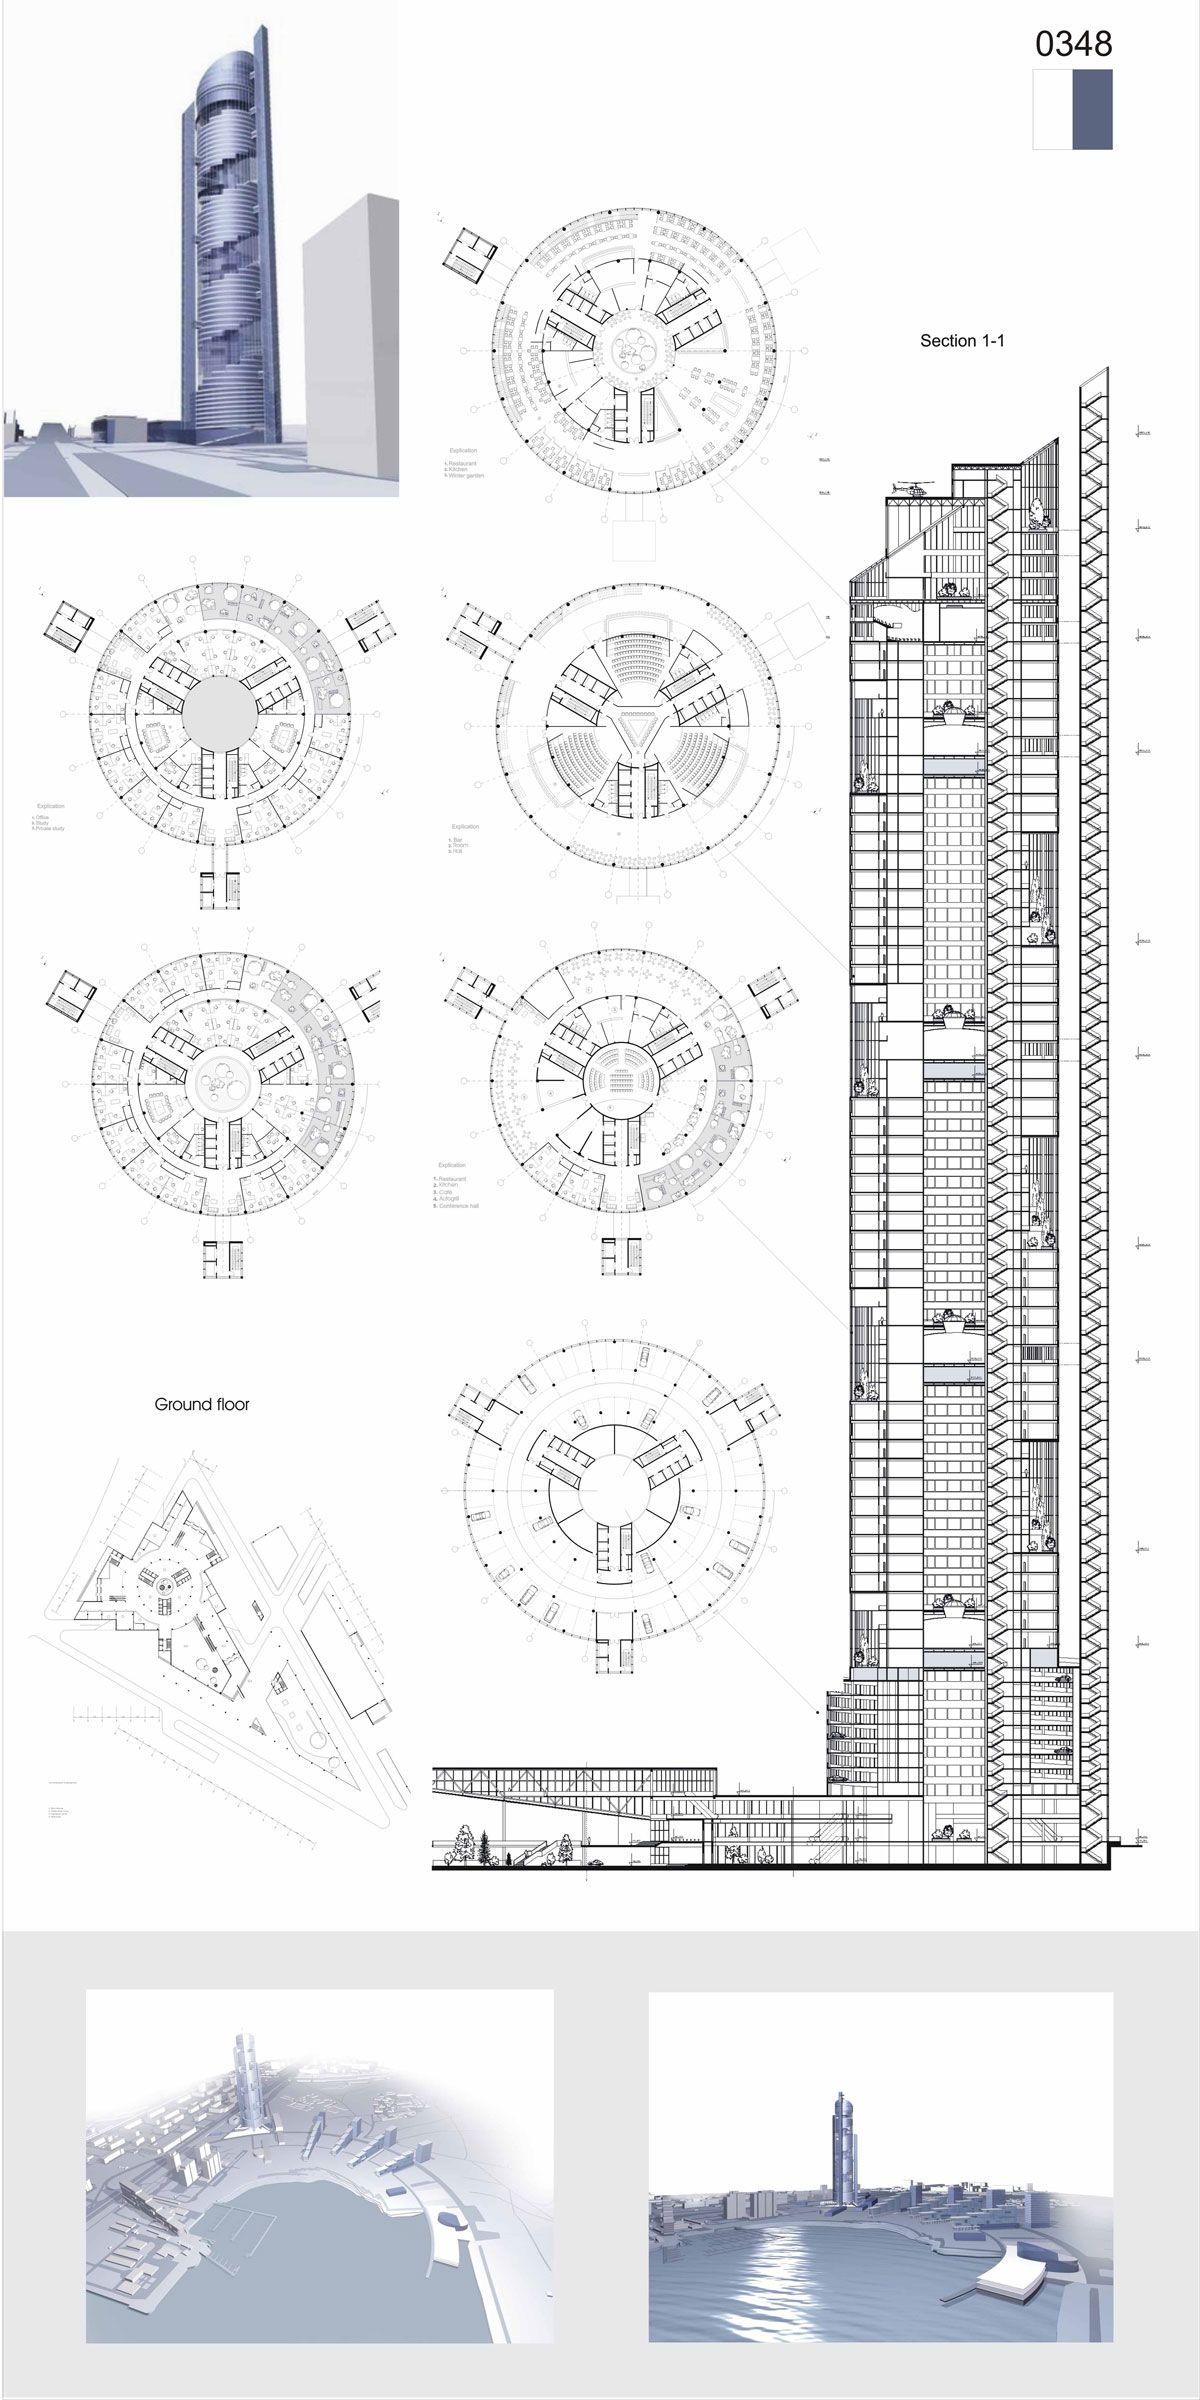 Architectural Drawings Of Skyscrapers skyscraper in moscow | project submitted to the 2006 skyscraper